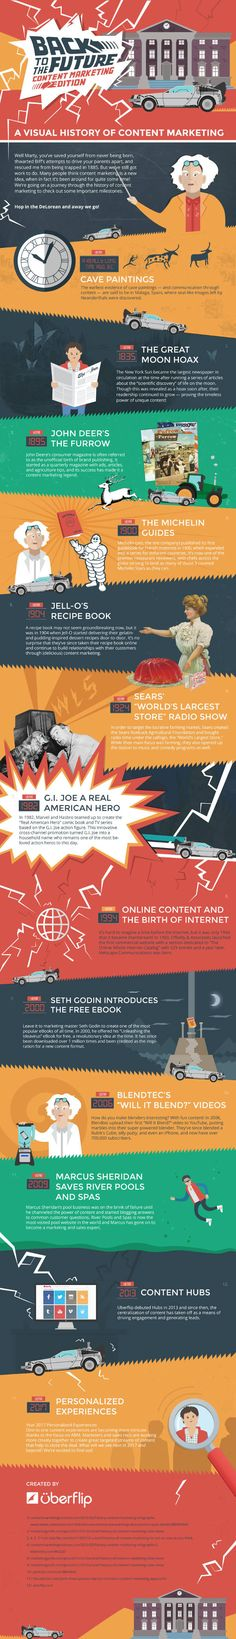 Content marketing history goes well back to the 19th century - maybe even prehistory. Check out these classic content marketing examples in this infographic overview of content history.